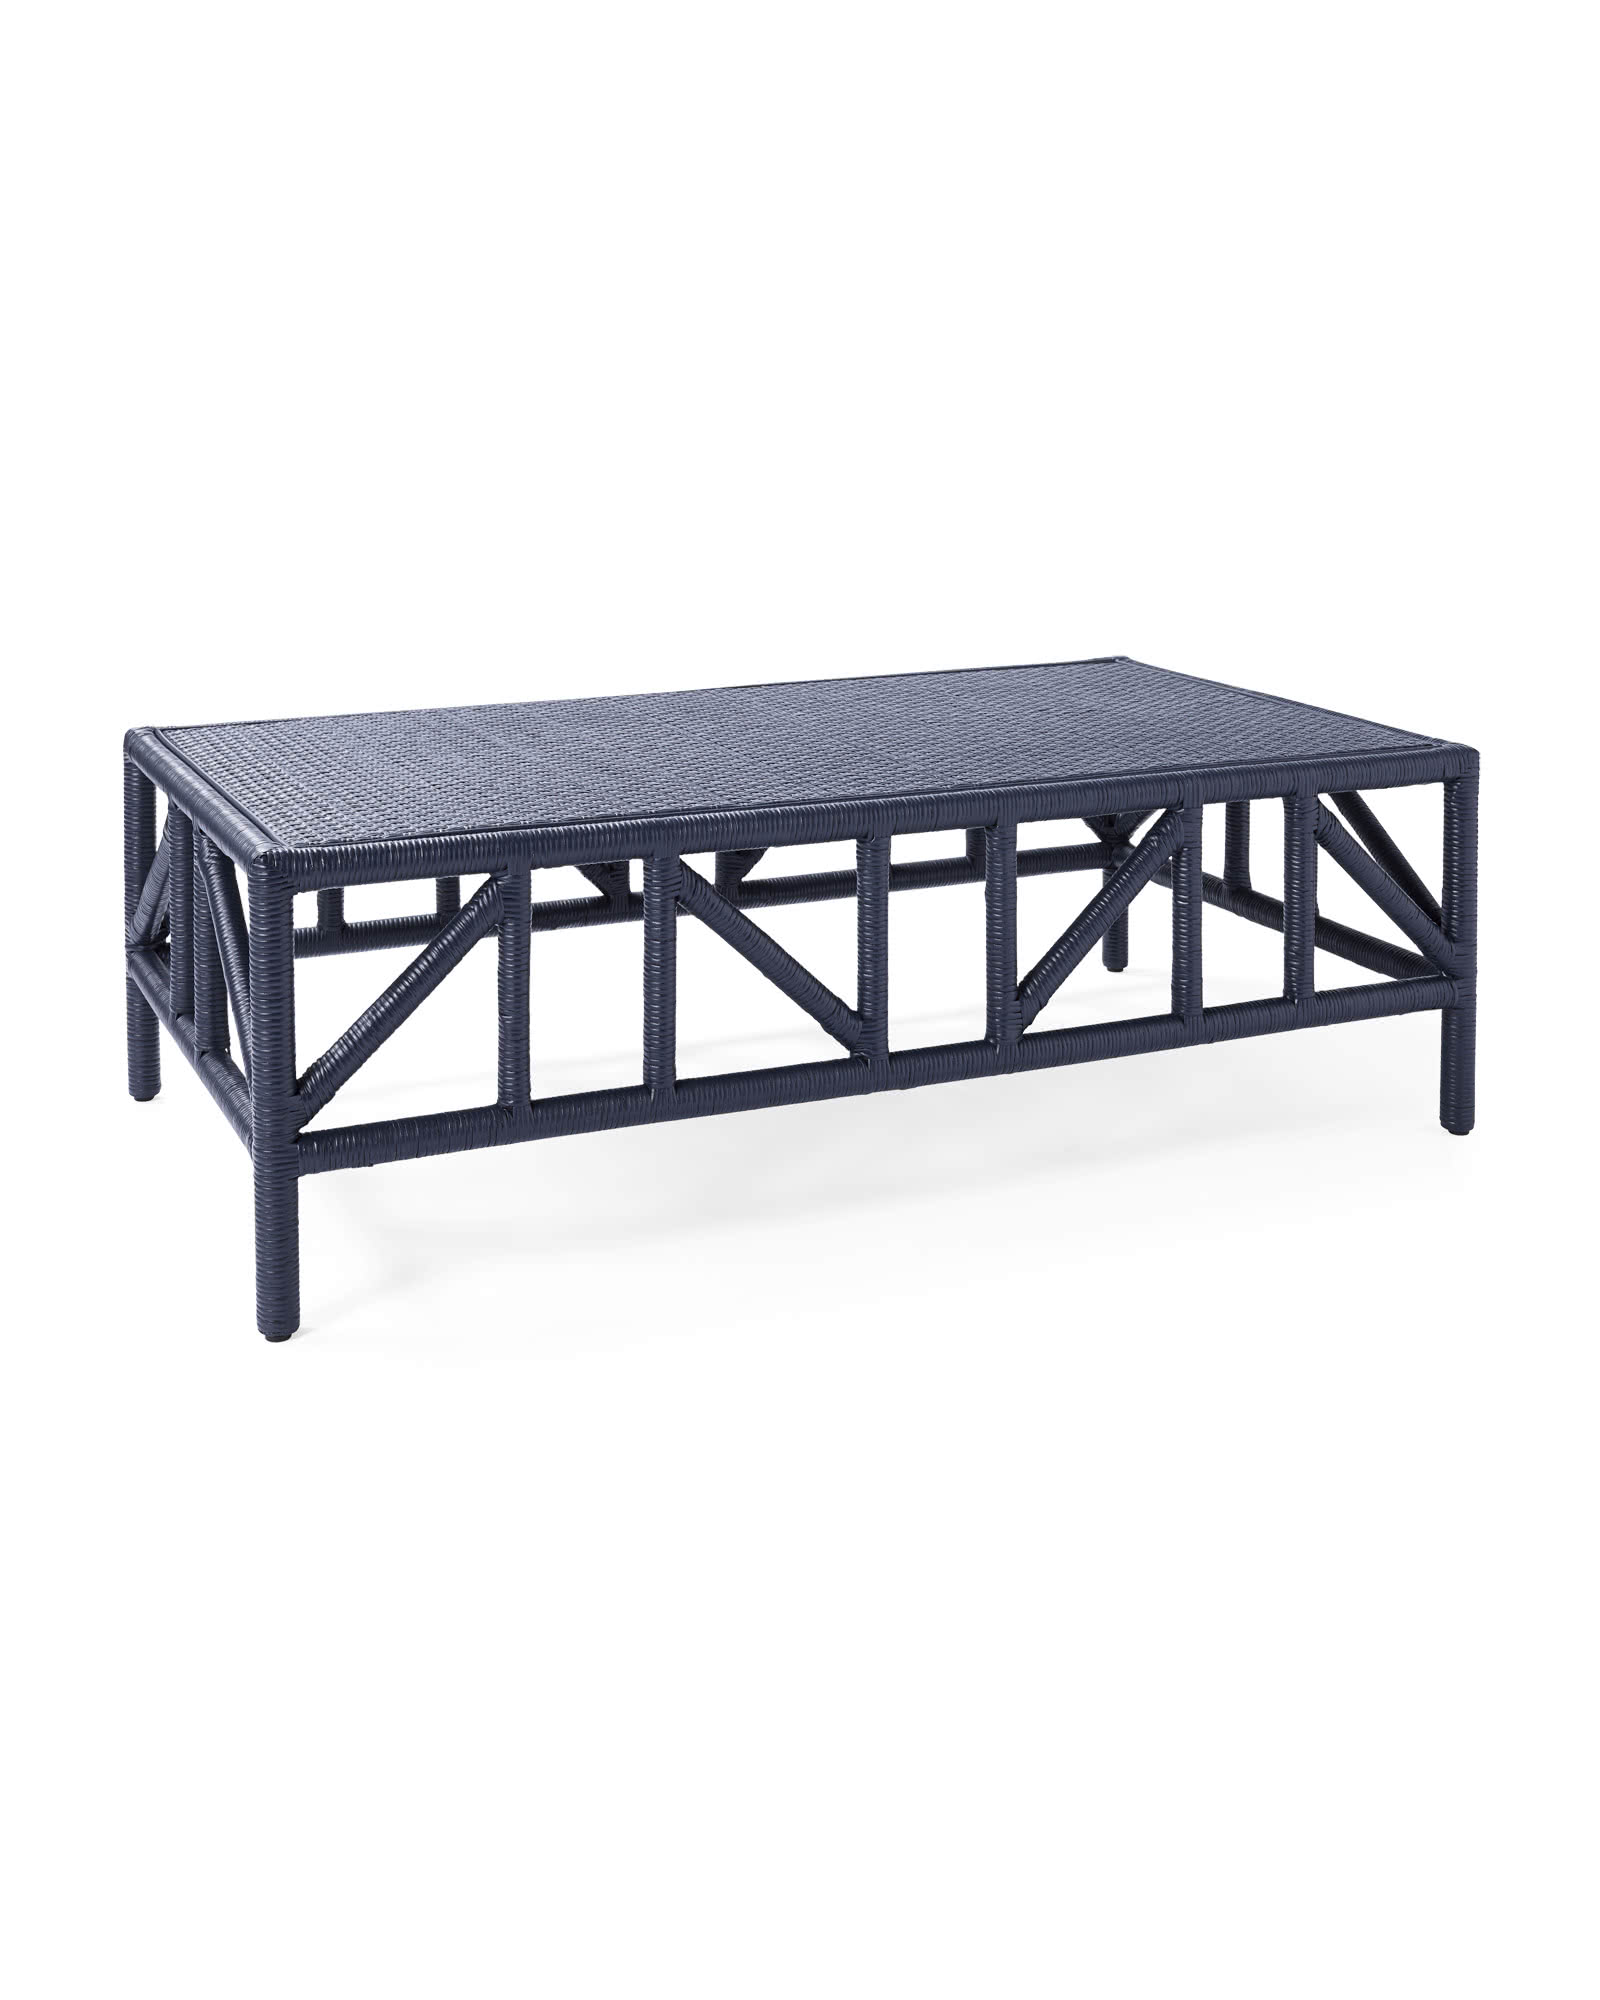 casual rattan goes chic with a rich navy finish on this  coffee table ! snap it up for 20% off!